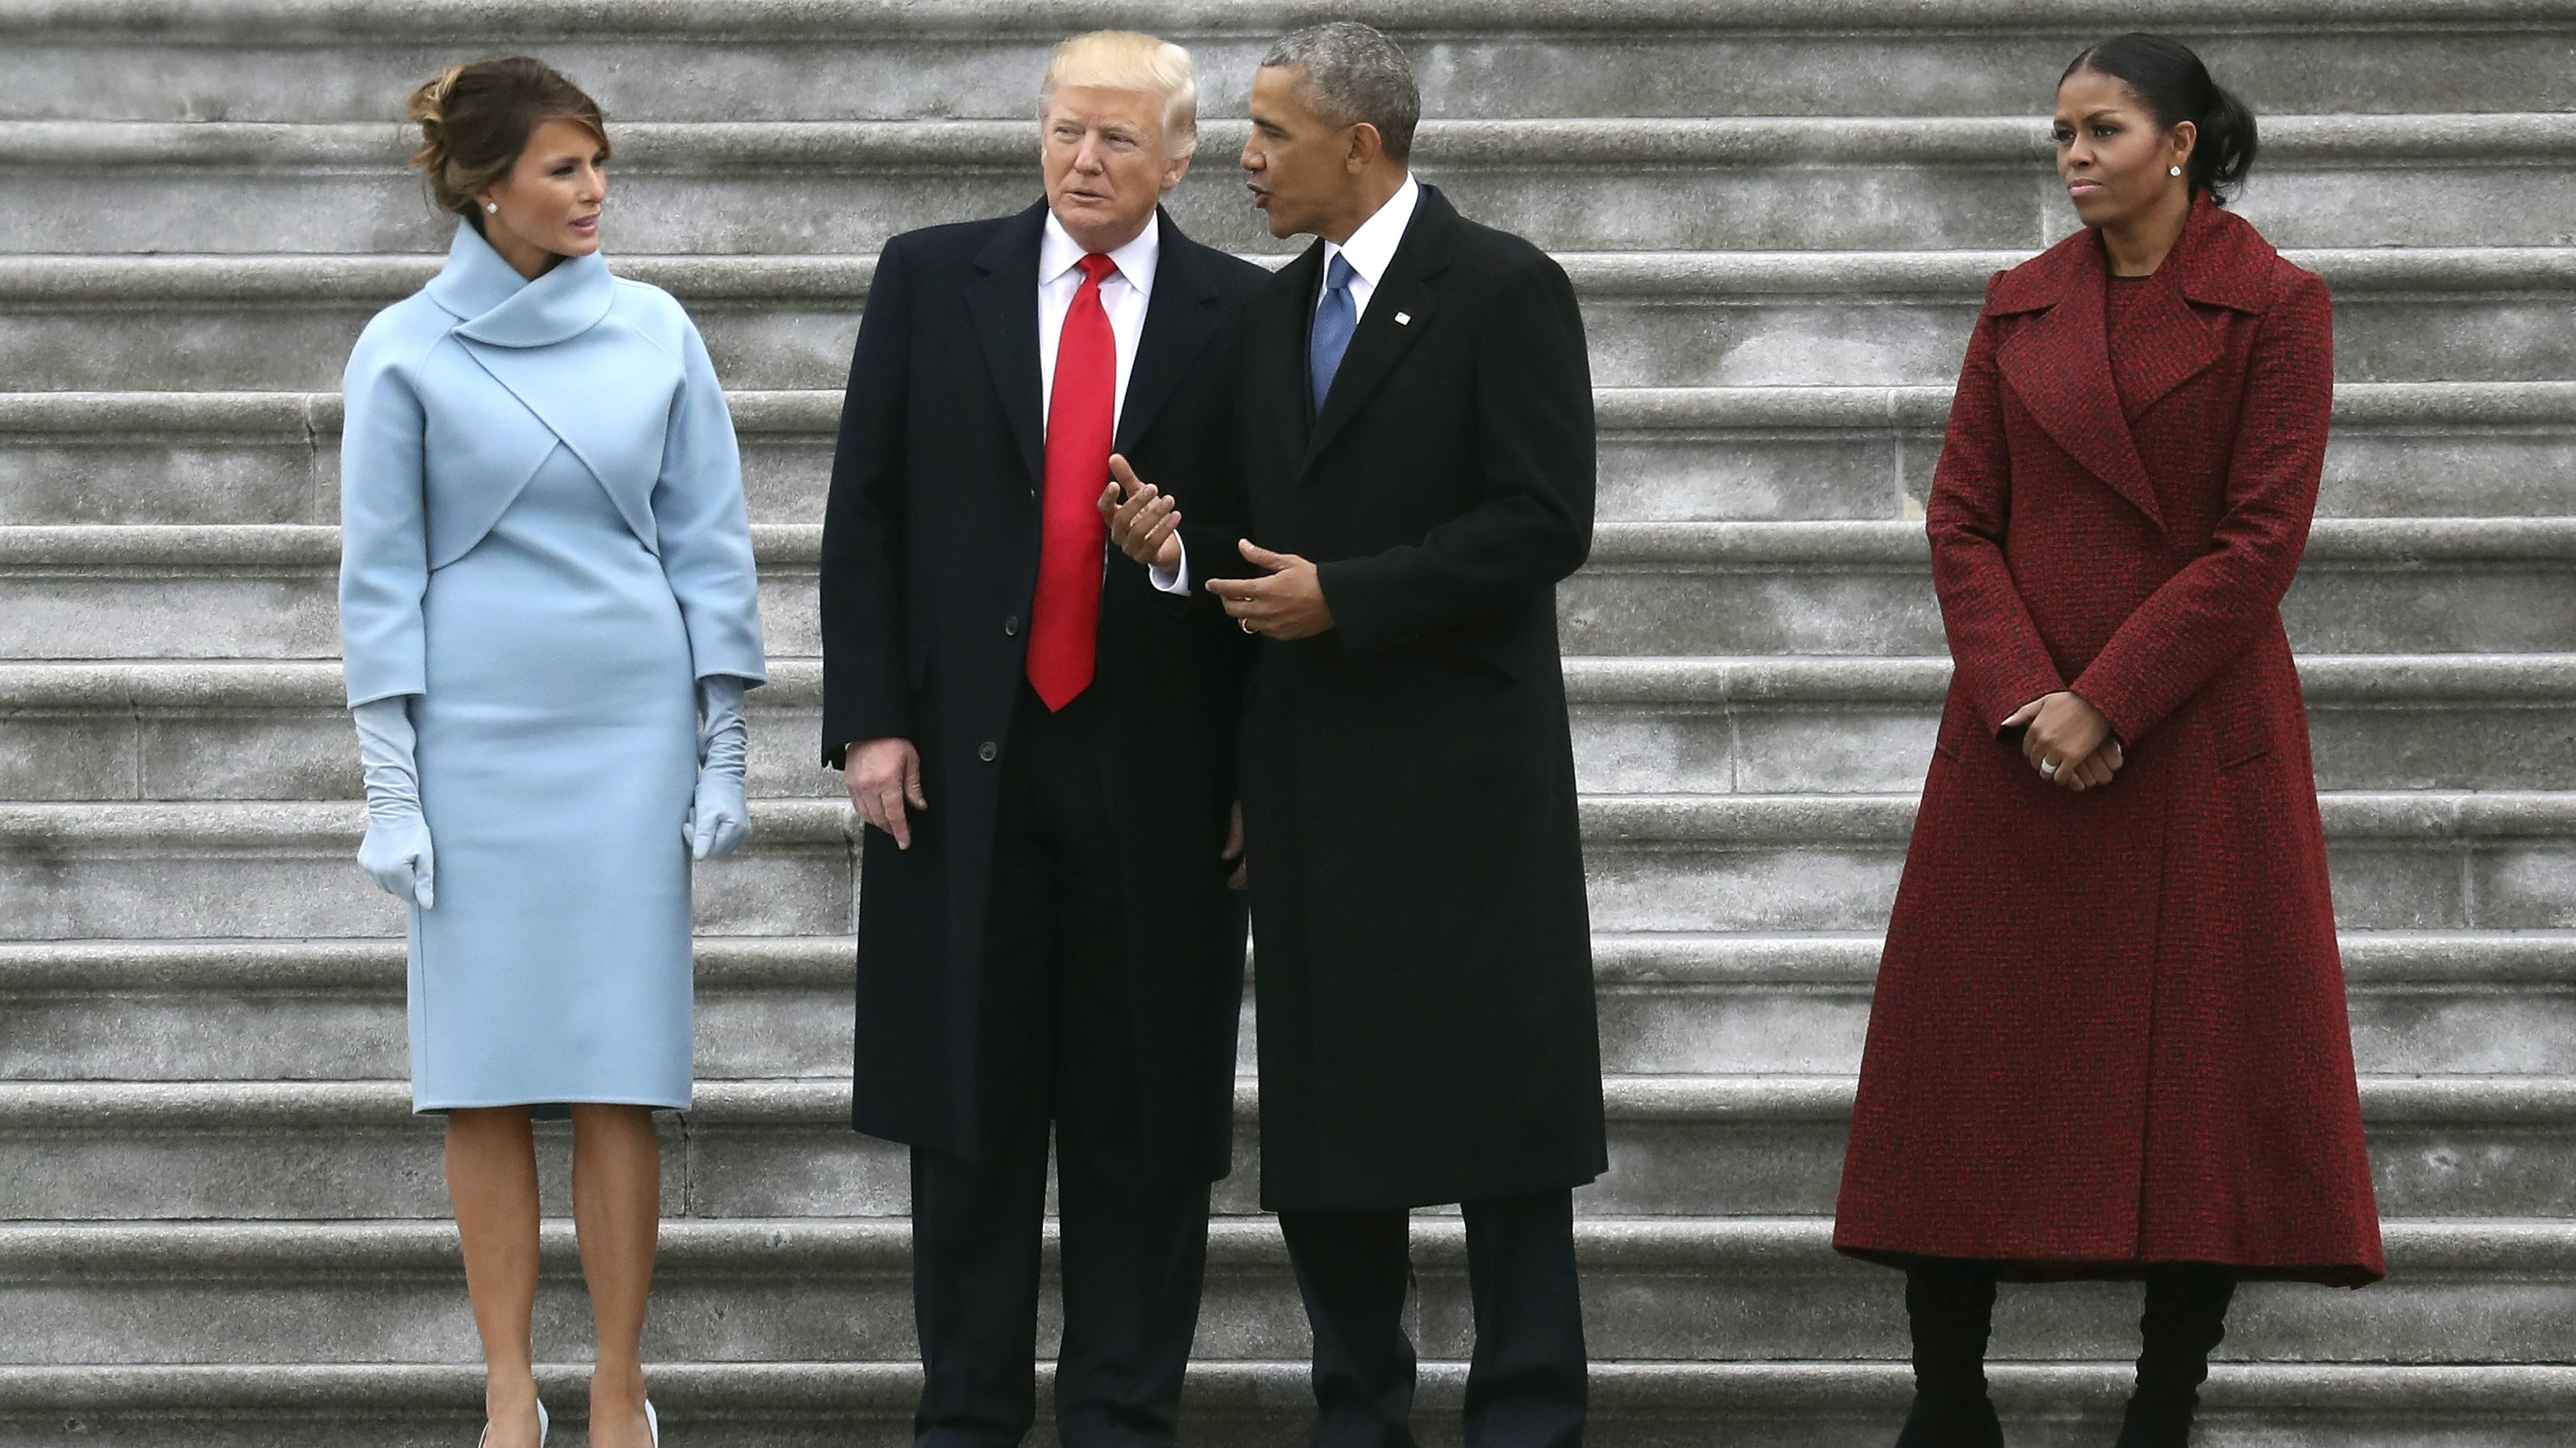 Donald Trump and Barack Obama stand on the steps of the US Capitol